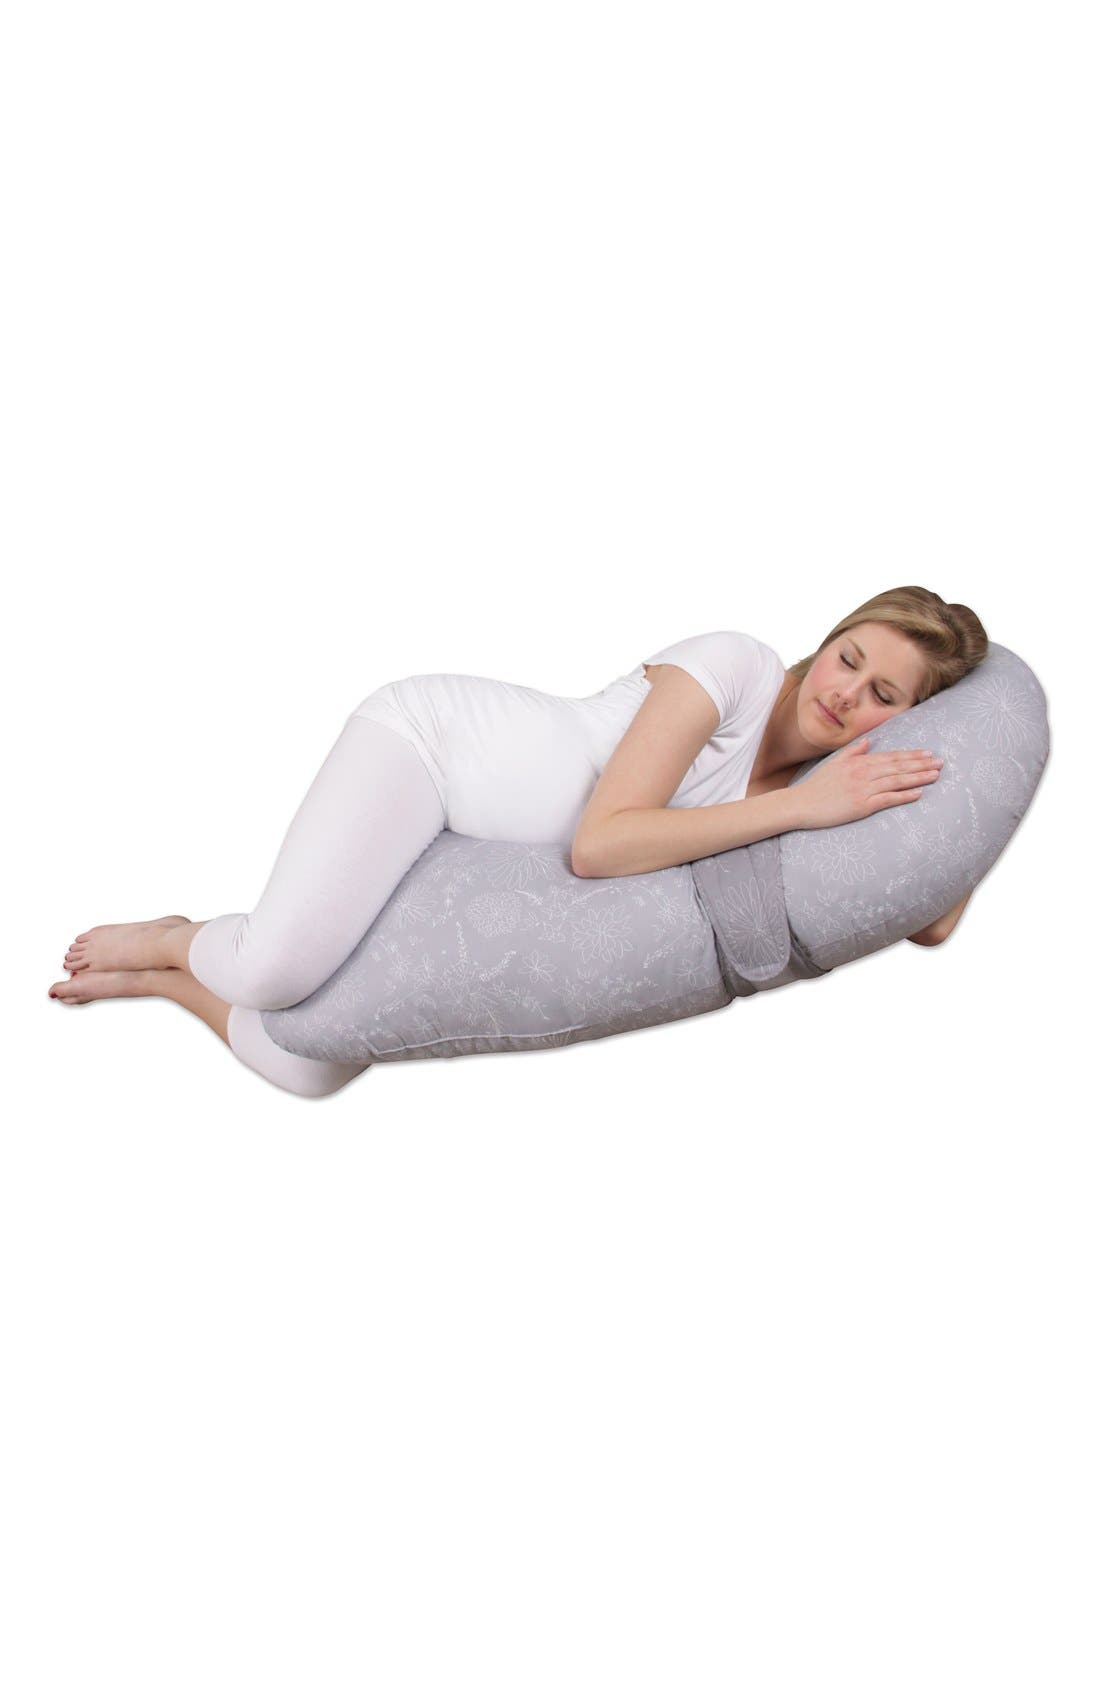 'Preggle<sup>®</sup> Chic - XL' Pregnancy Support Pillow,                             Alternate thumbnail 14, color,